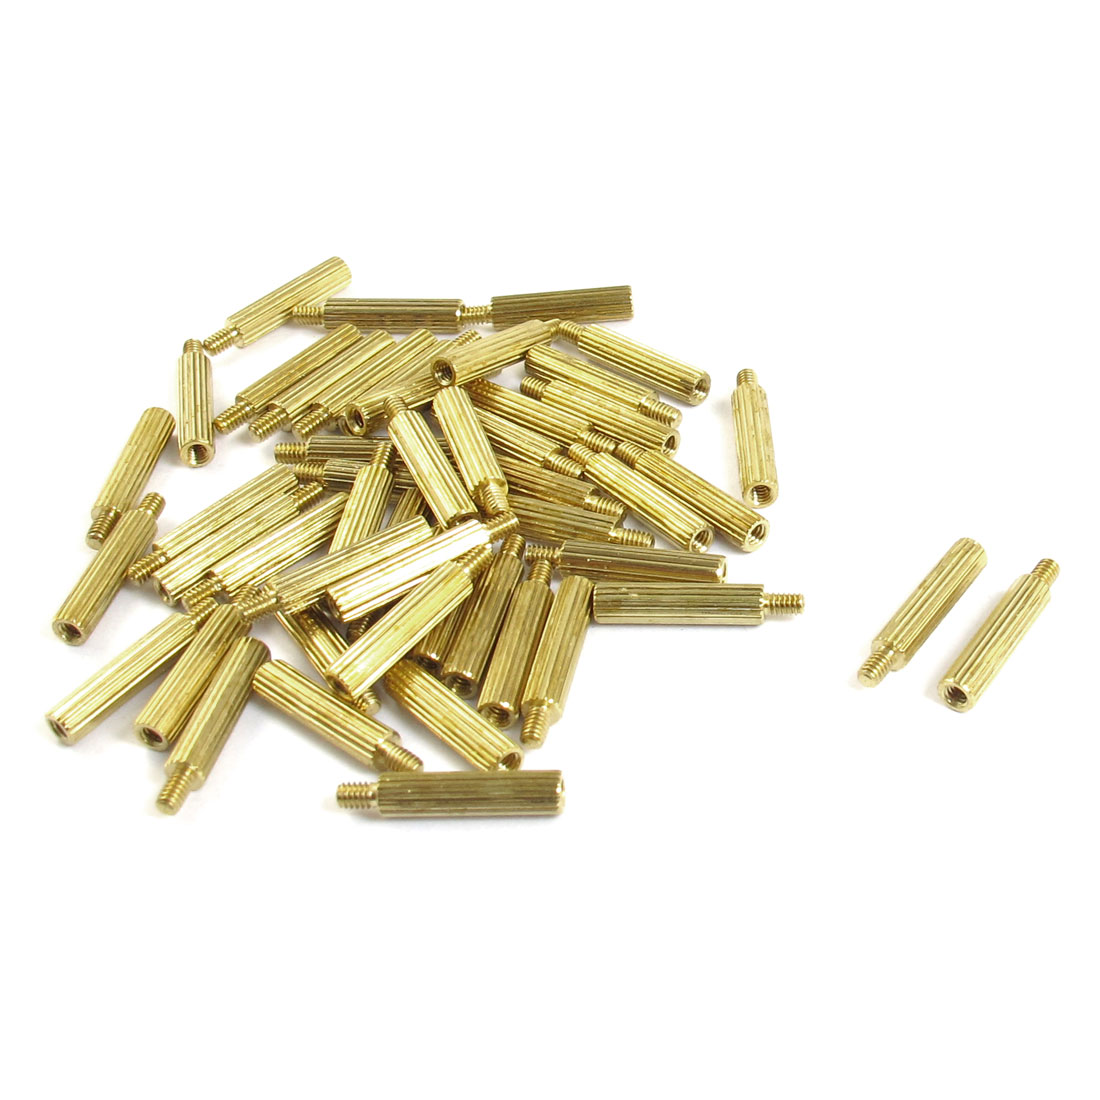 50 Pcs Male to Female Thread Brass Pillars Standoff Spacer M2x13mmx16mm